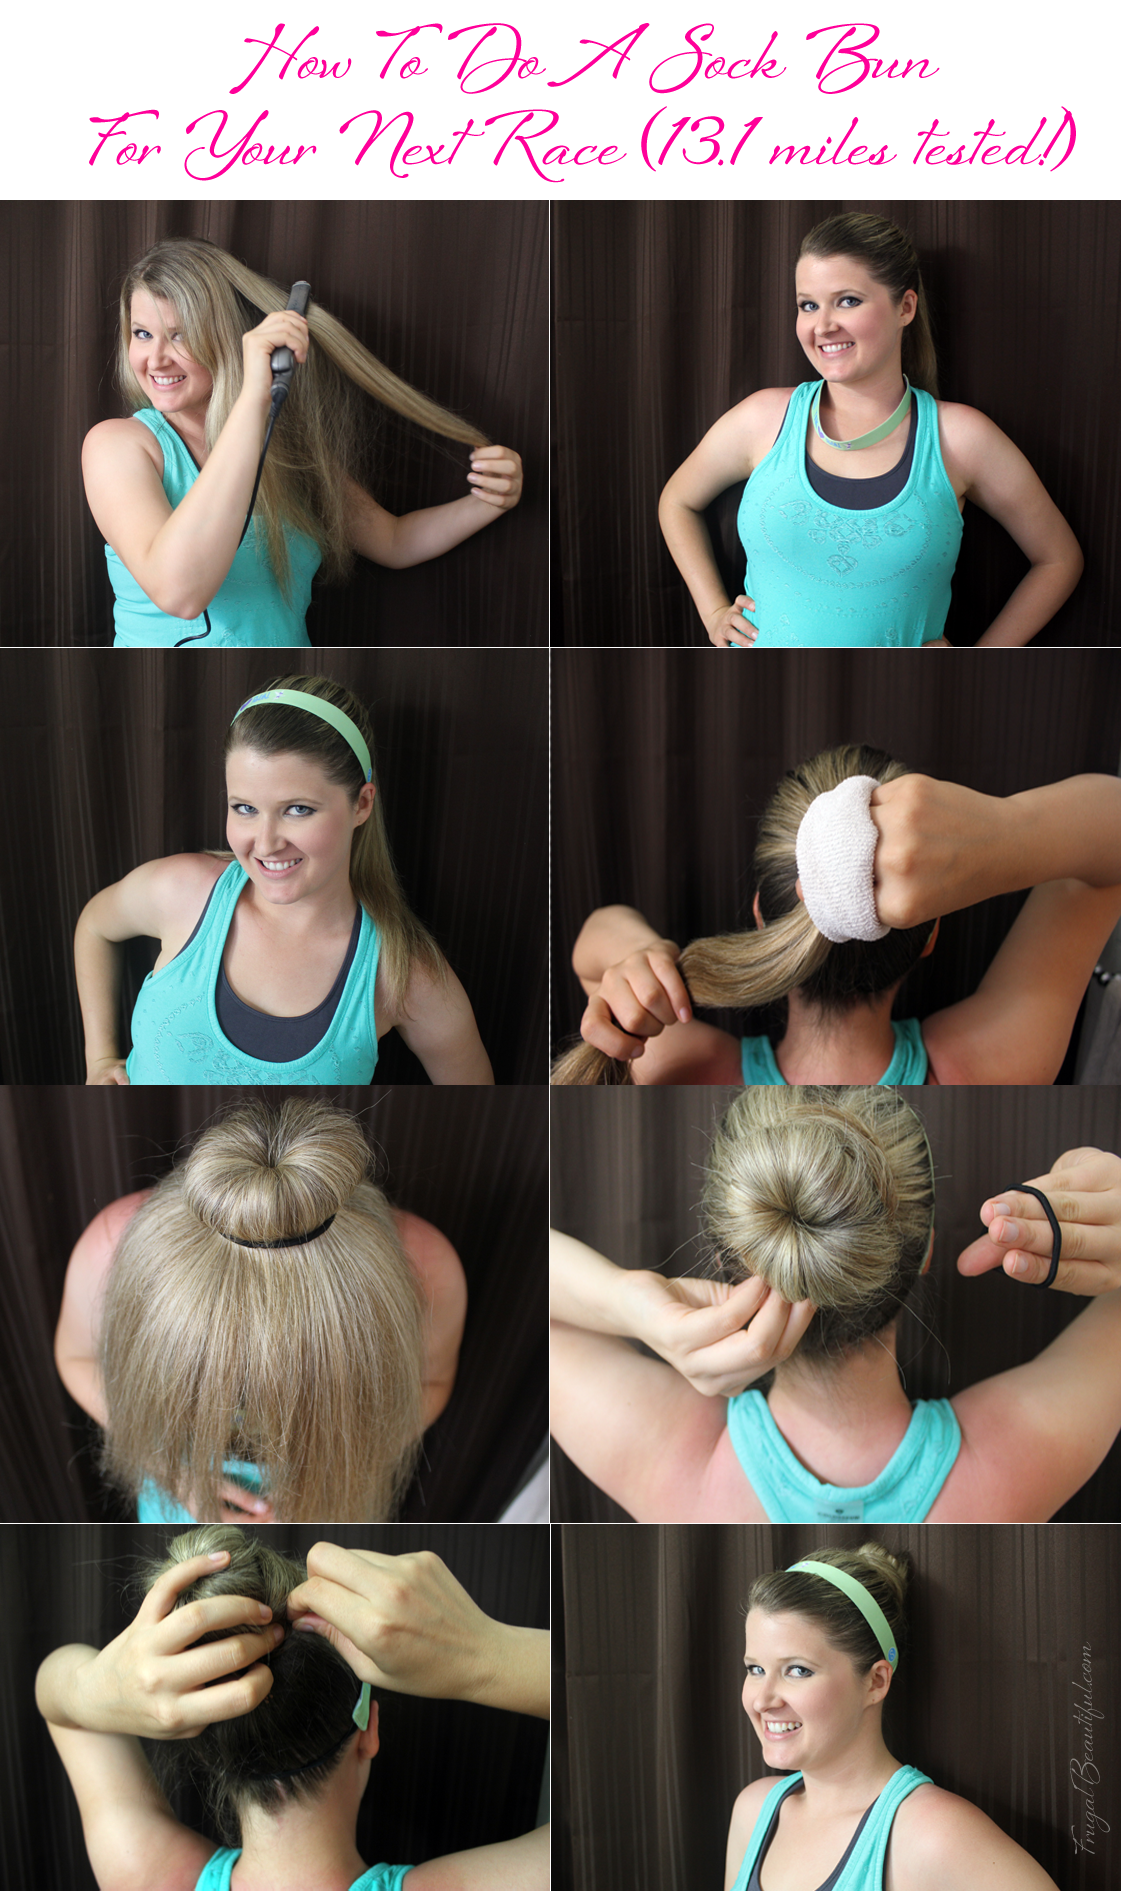 How To Do A Sock Bun For Your Next Race (Half Marathon approved!)